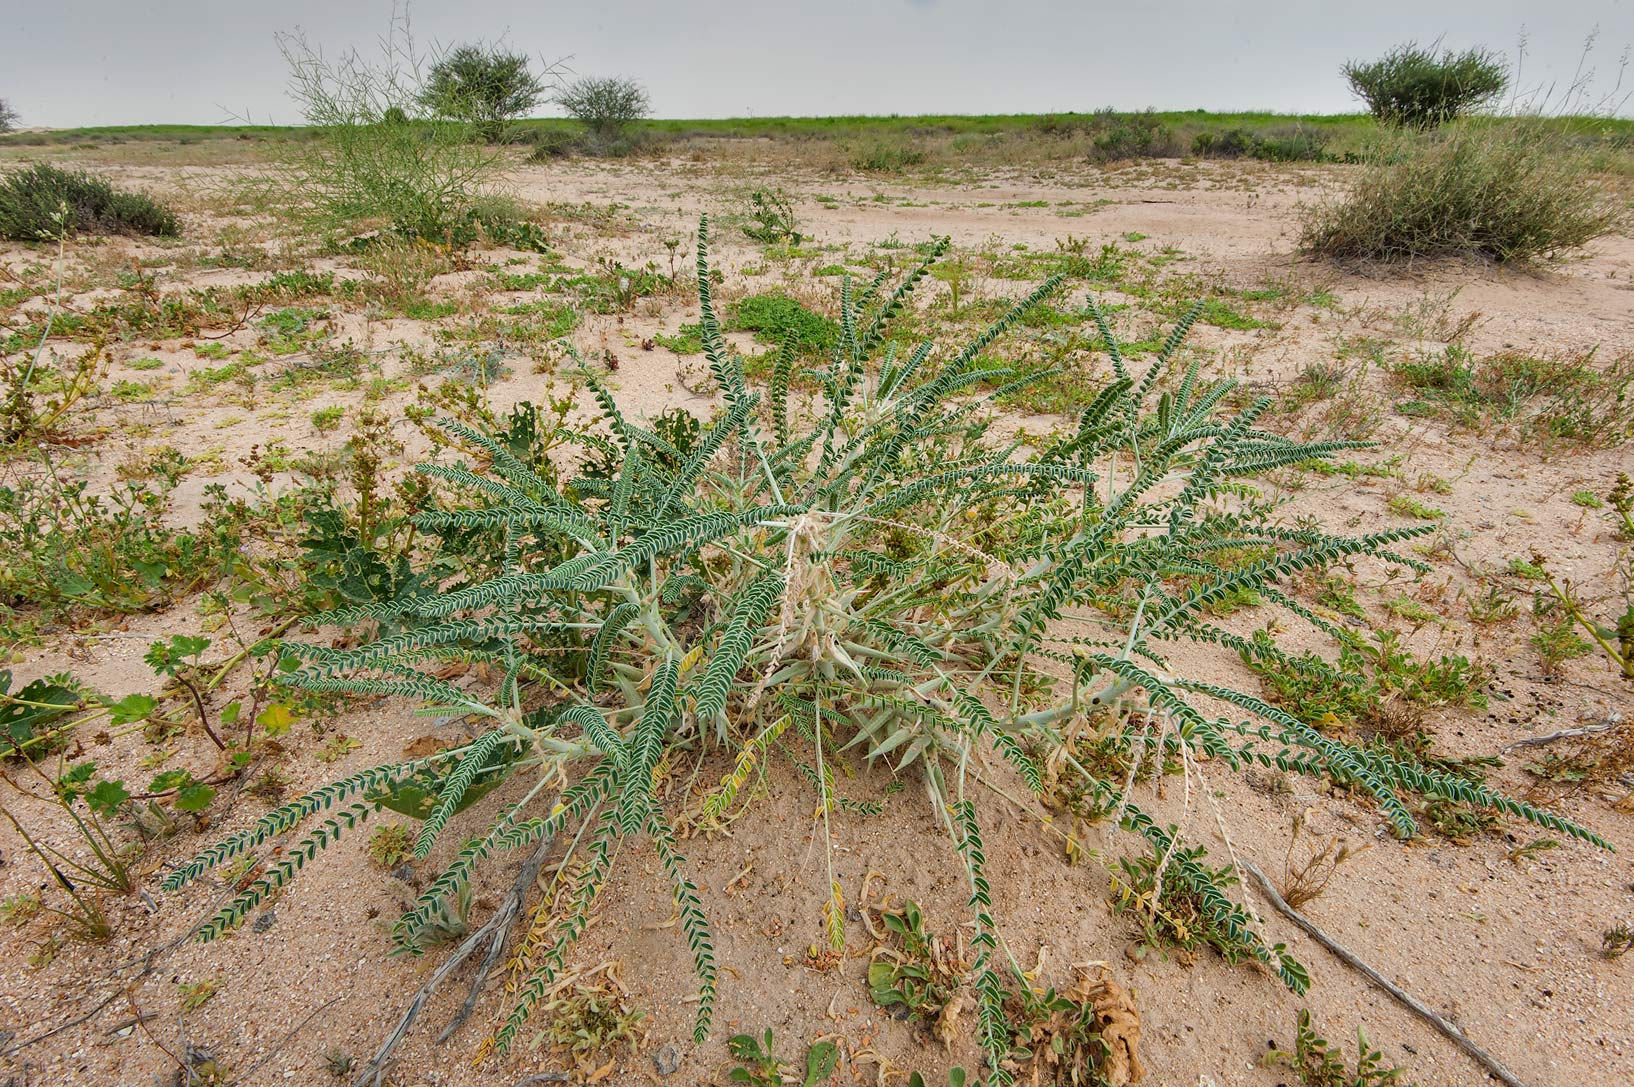 Ground view of plant of Astragalus sieberi on...Irkaya) Farms. South-western Qatar